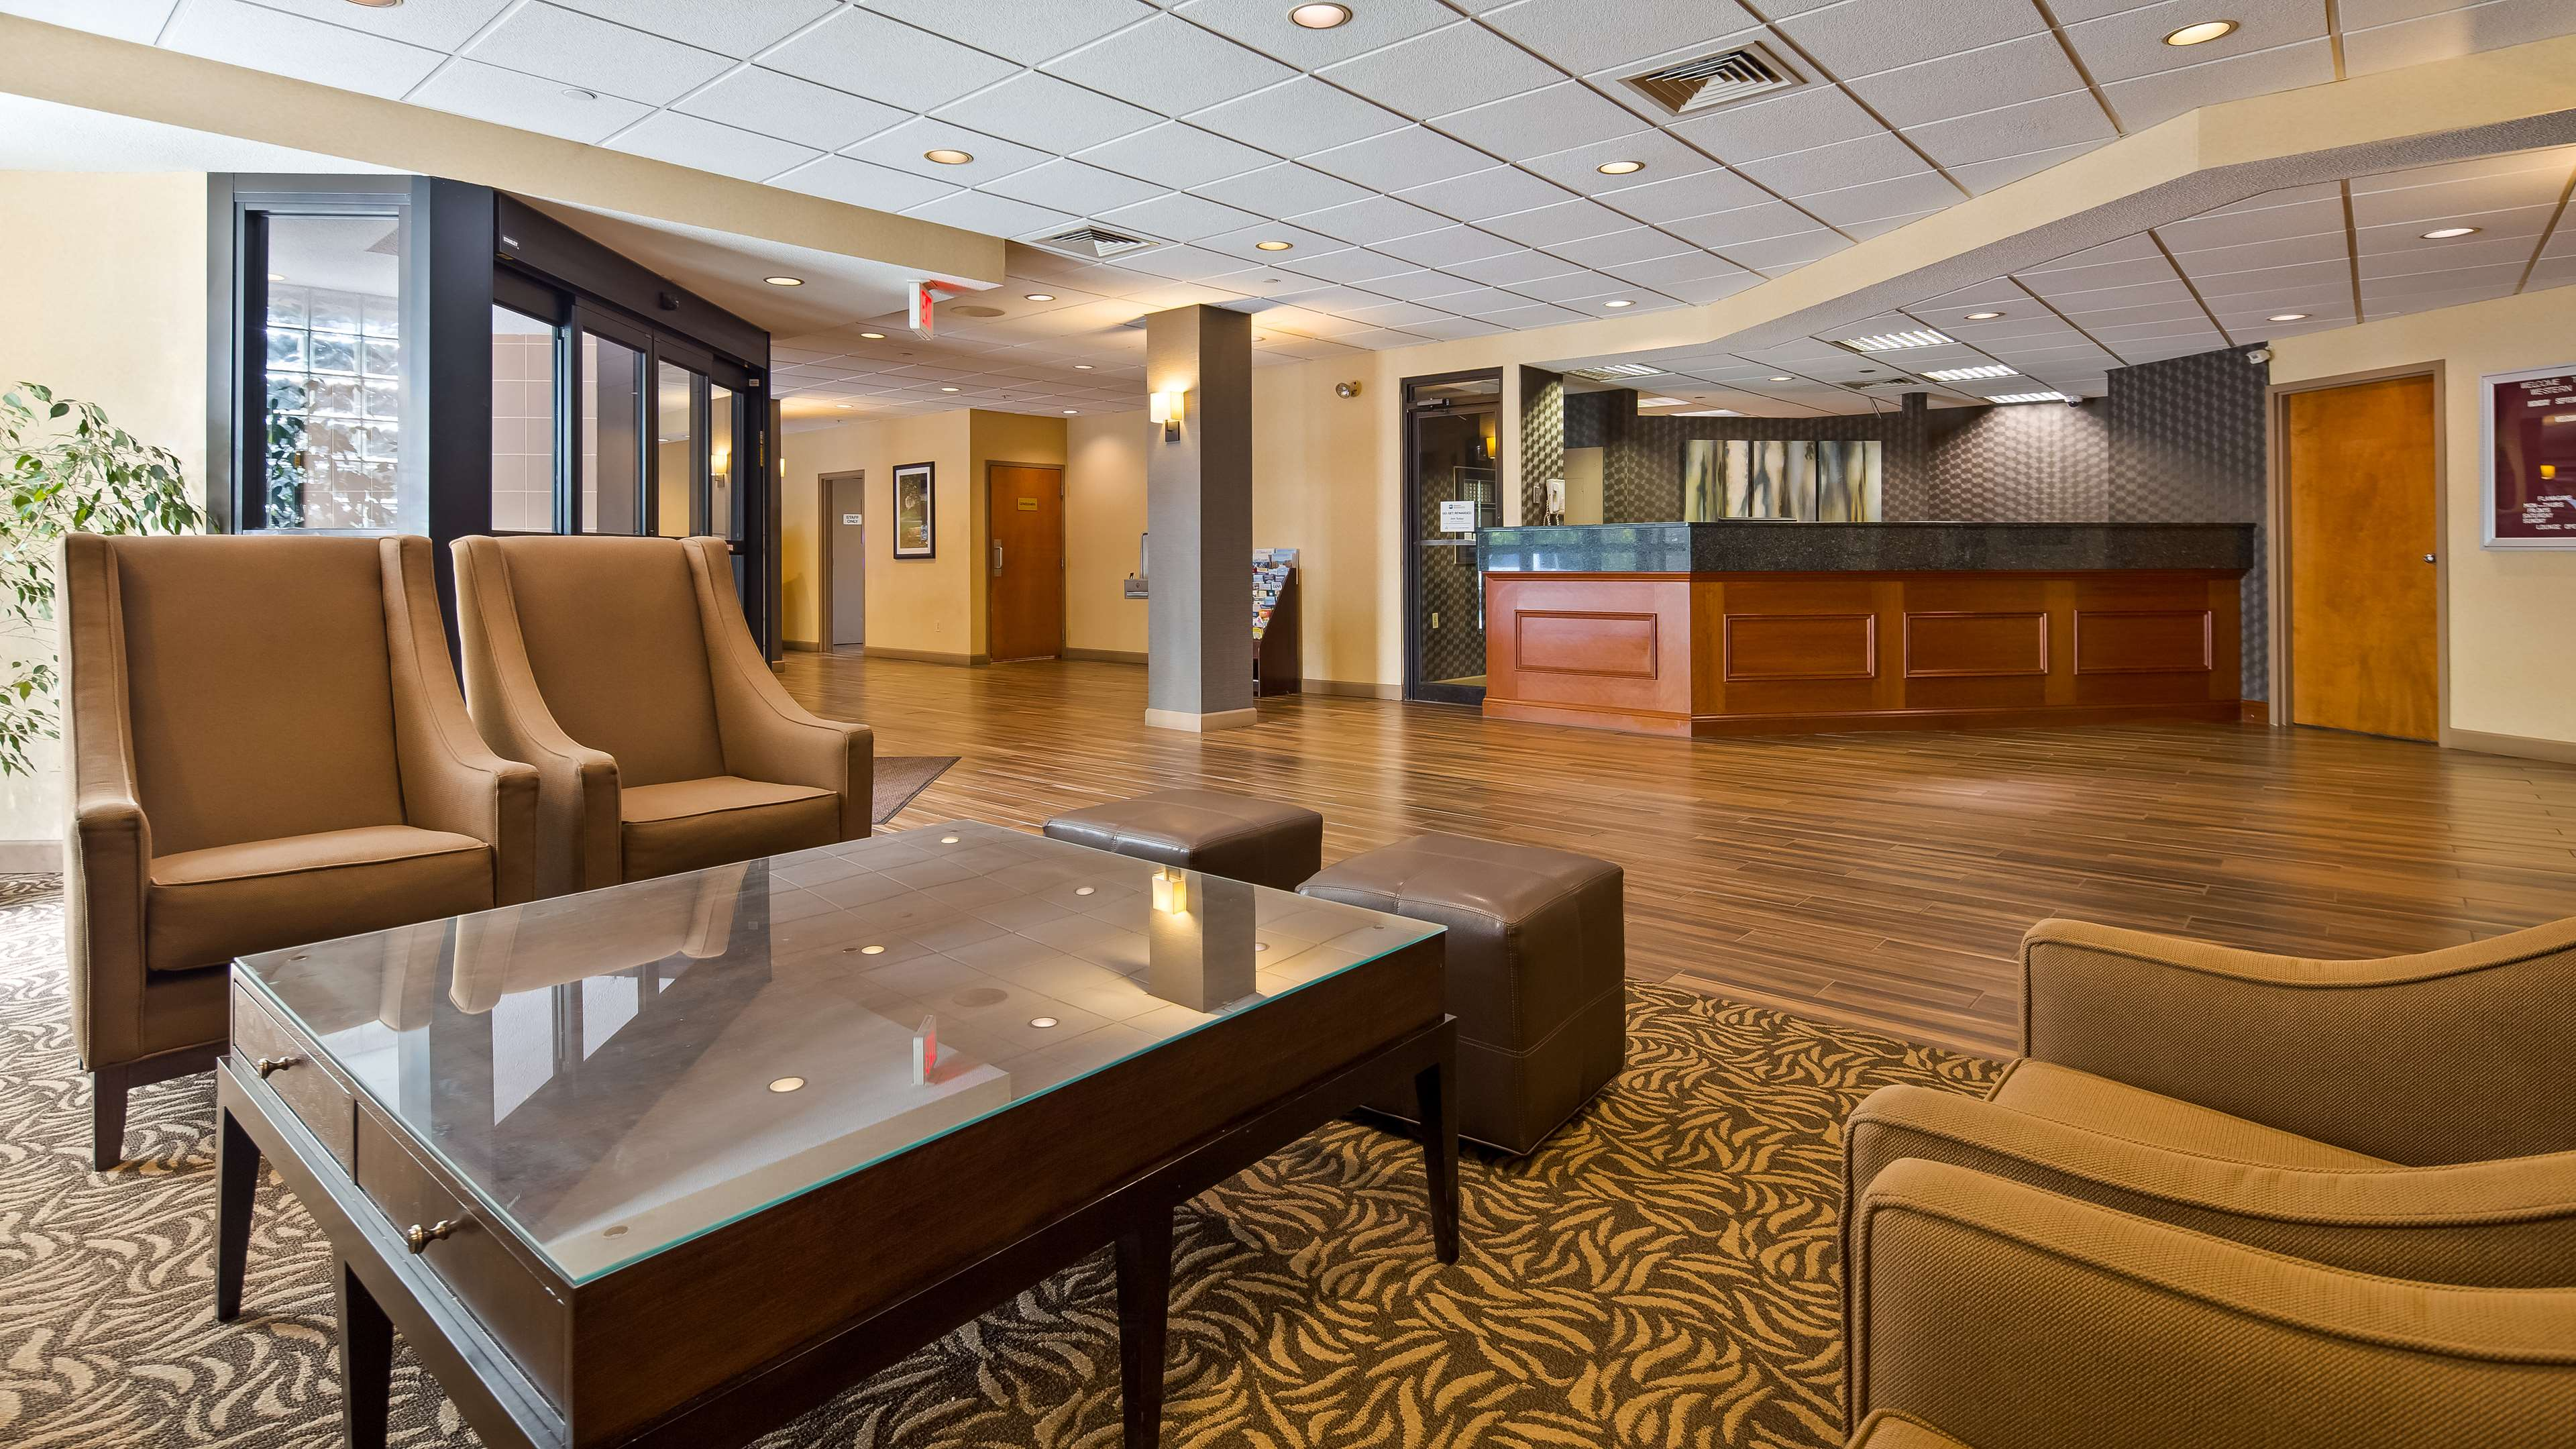 Best Western Olympic Inn At 360 Route 12 Groton Ct On Fave